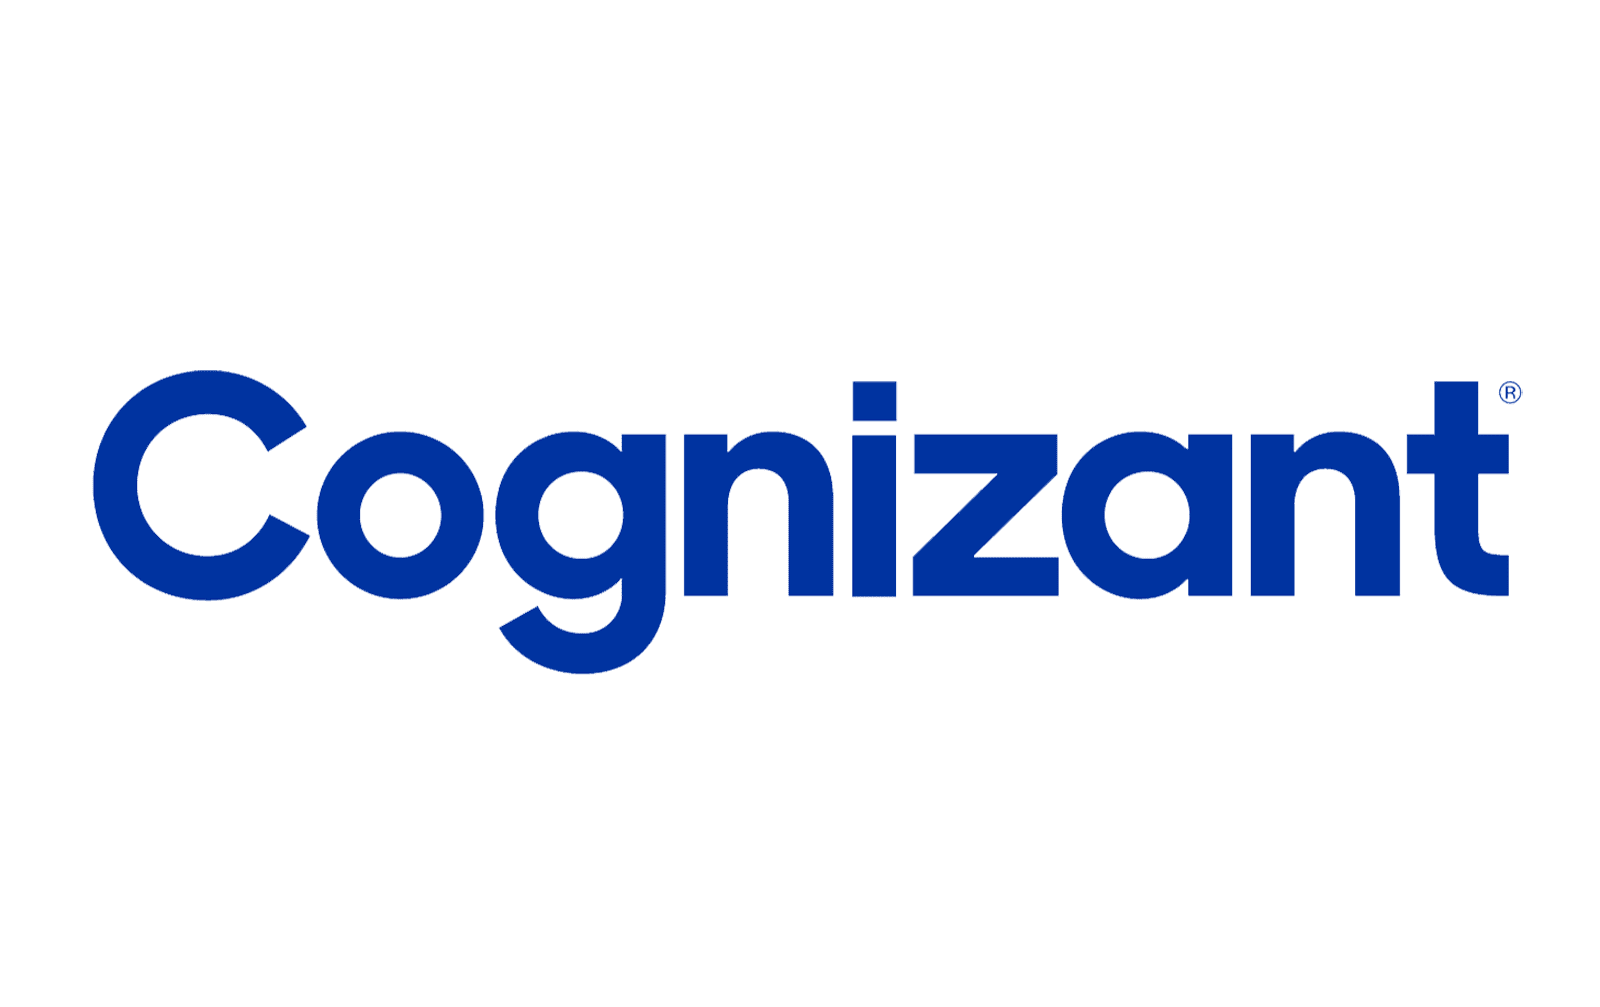 The logo for Cognizant